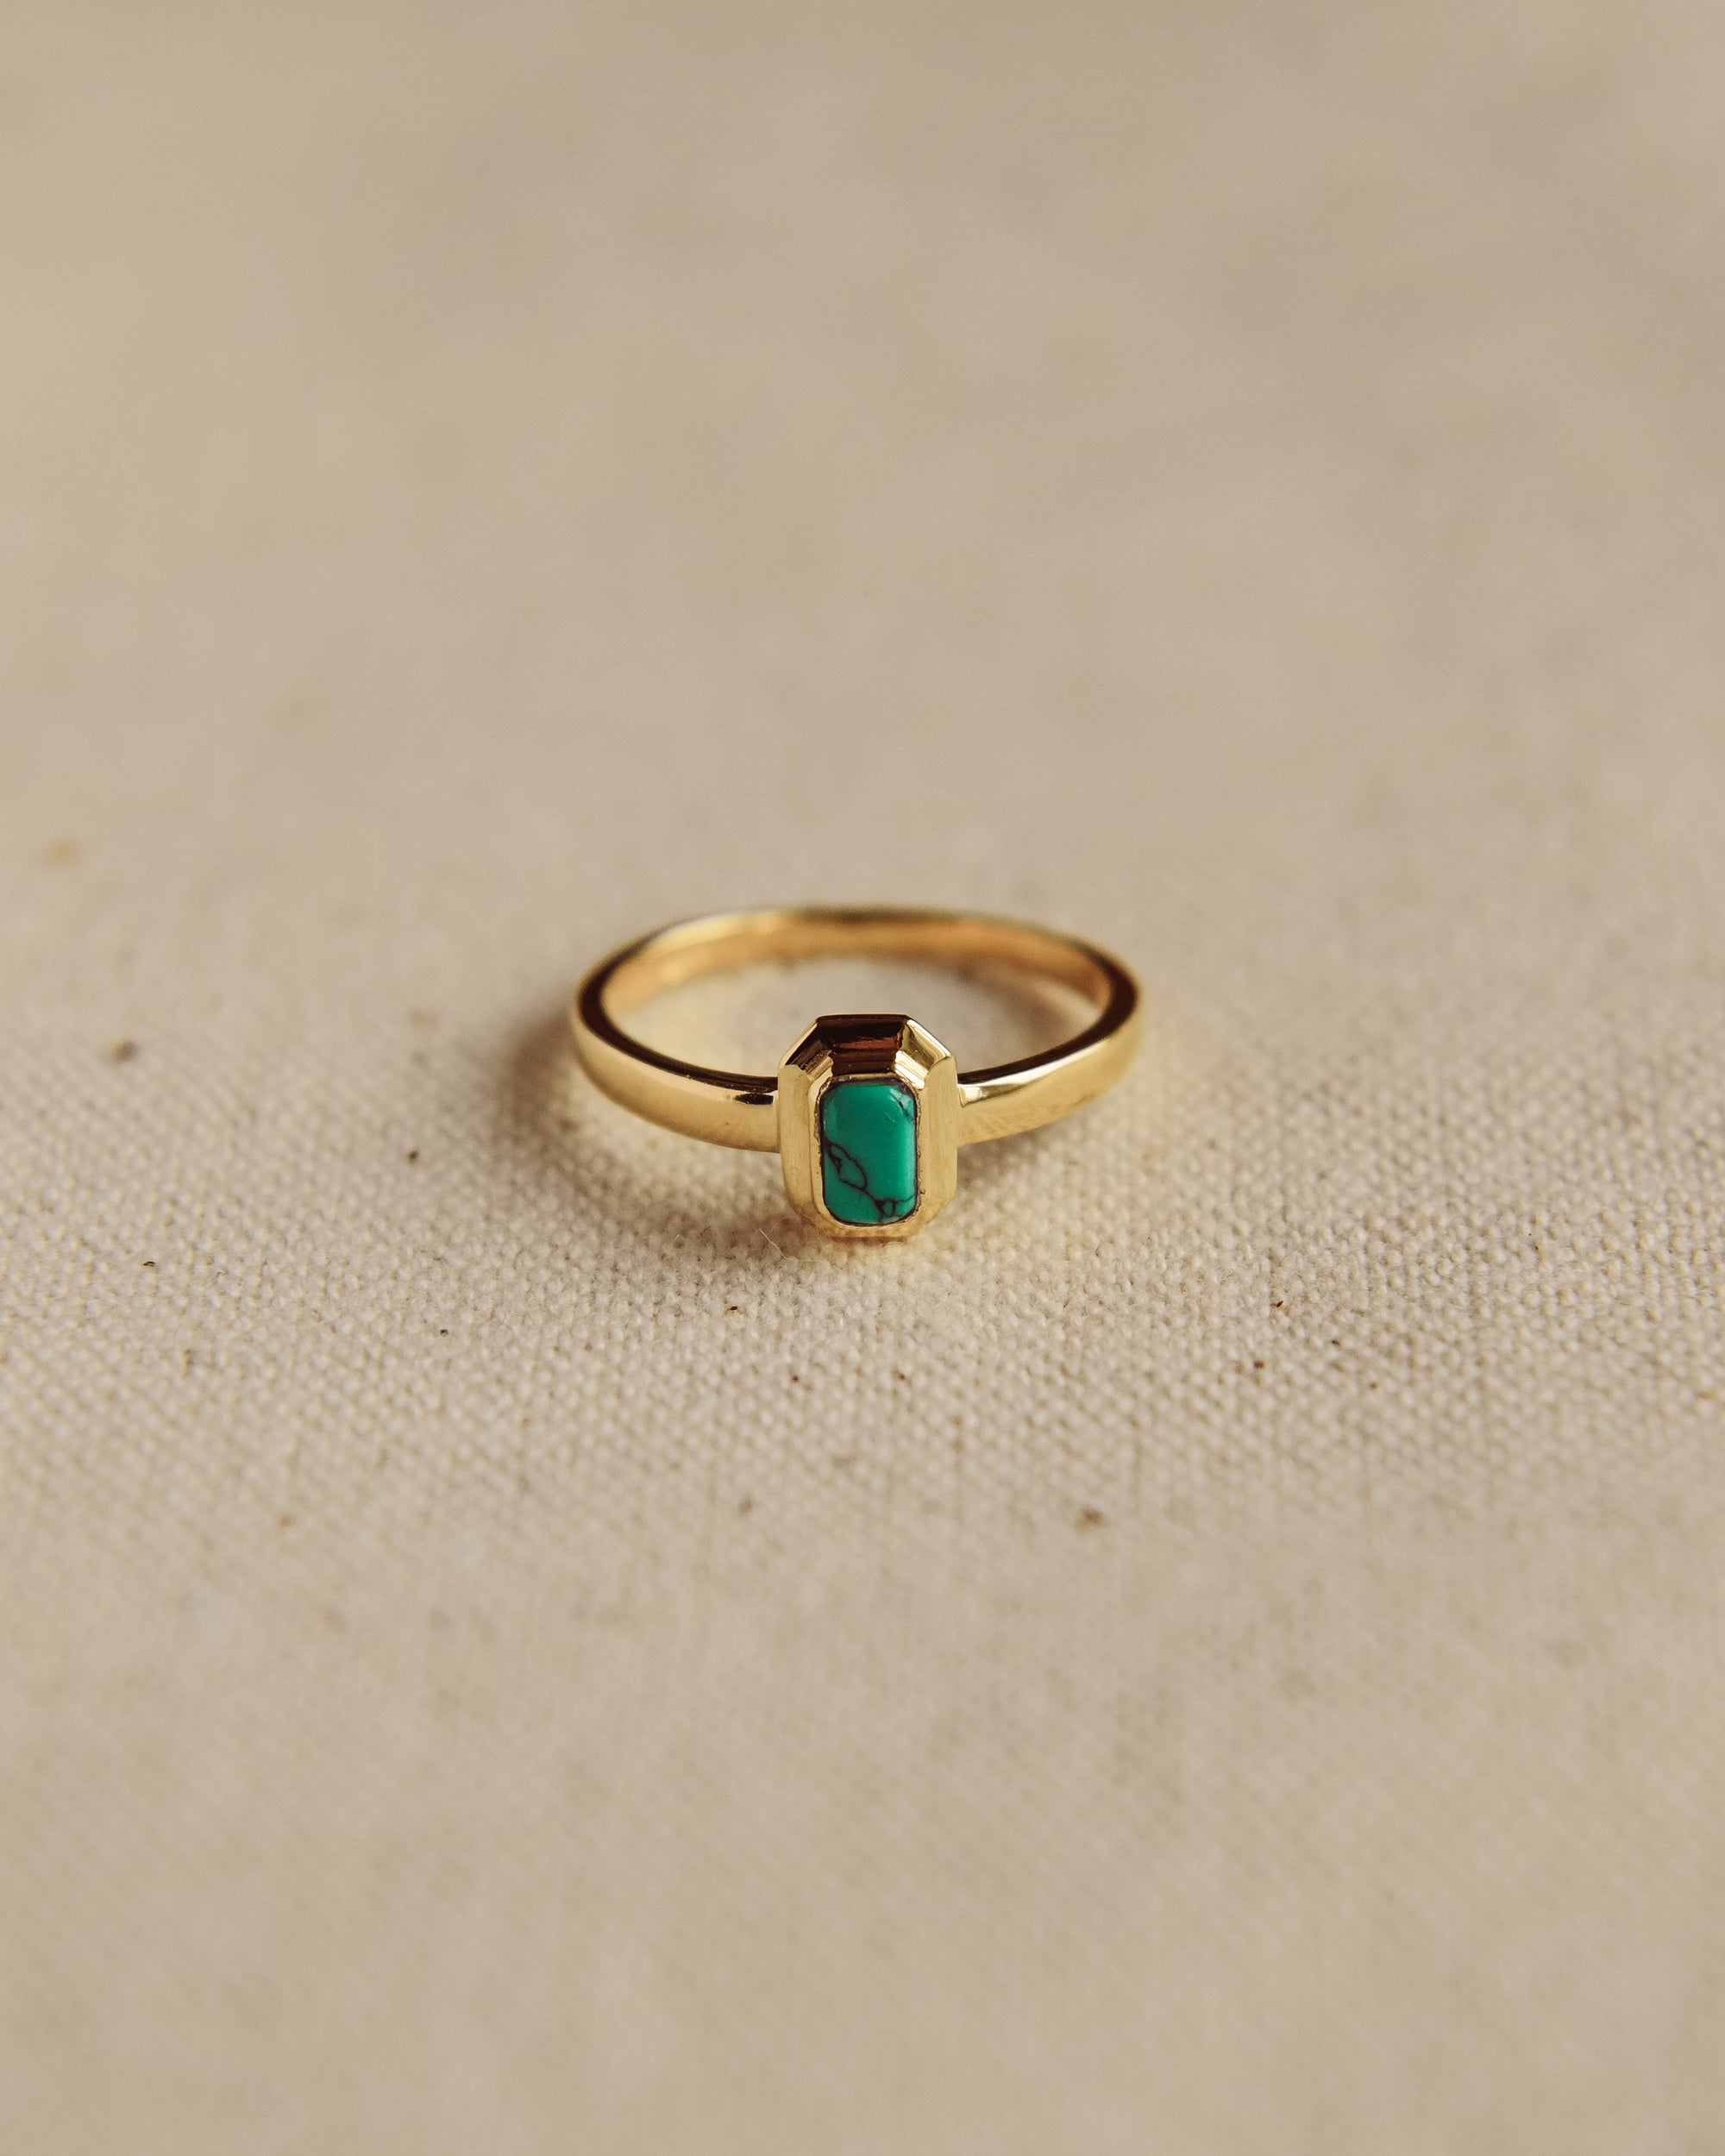 Image of Frances Gold Vermeil Birthstone Ring - December